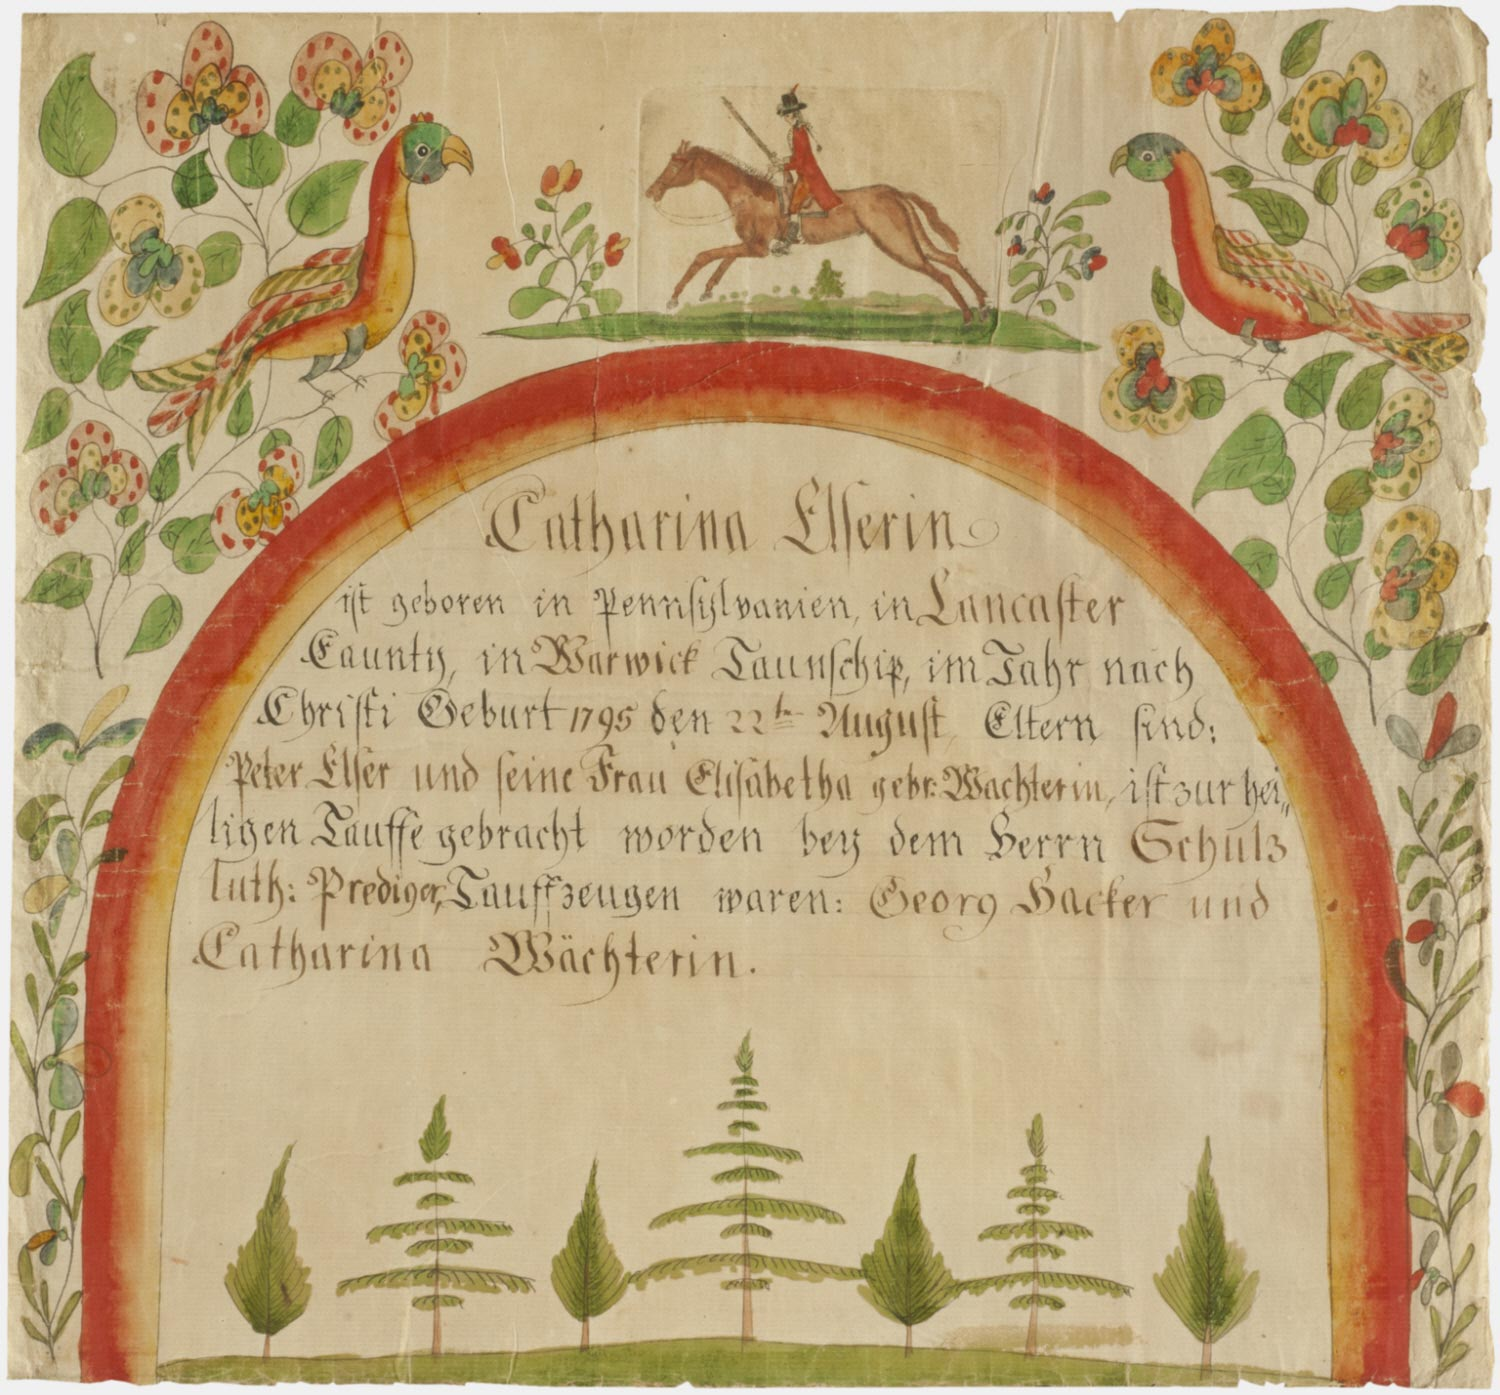 Birth and Baptismal Certificate for Catharina Elser (born August 22, 1795)